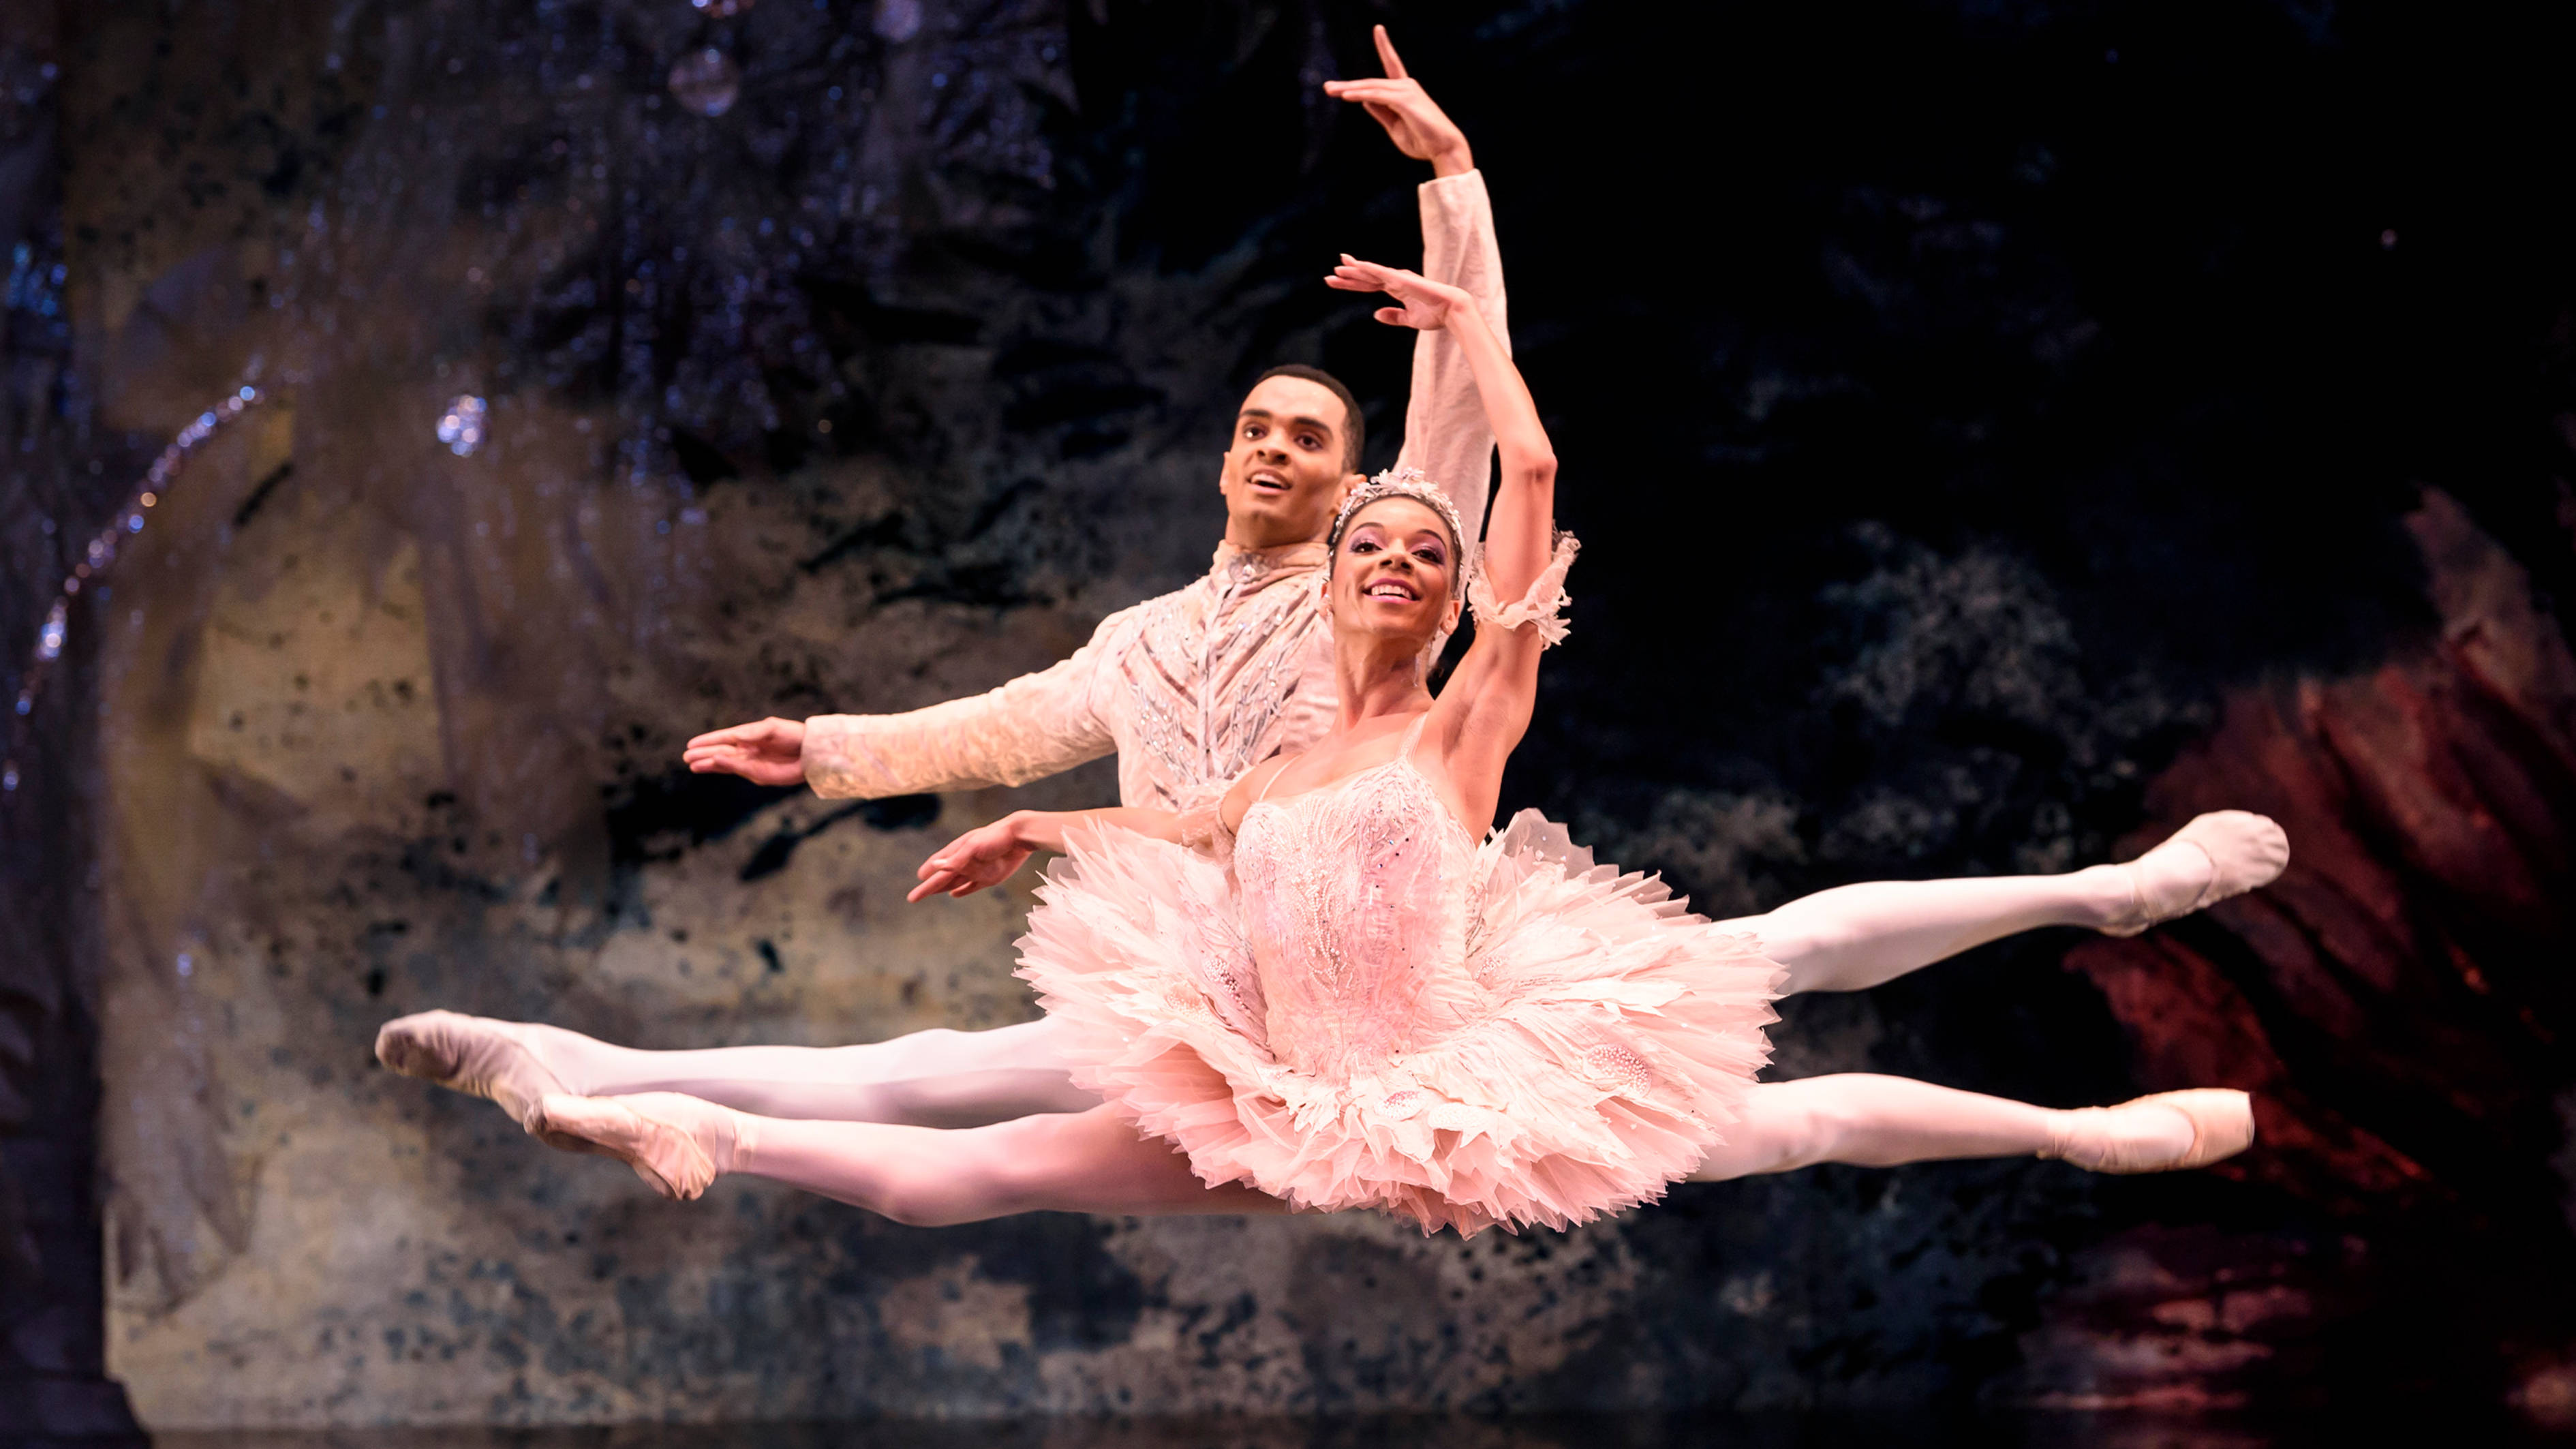 What it's really like being a male ballet dancer, according to a professional